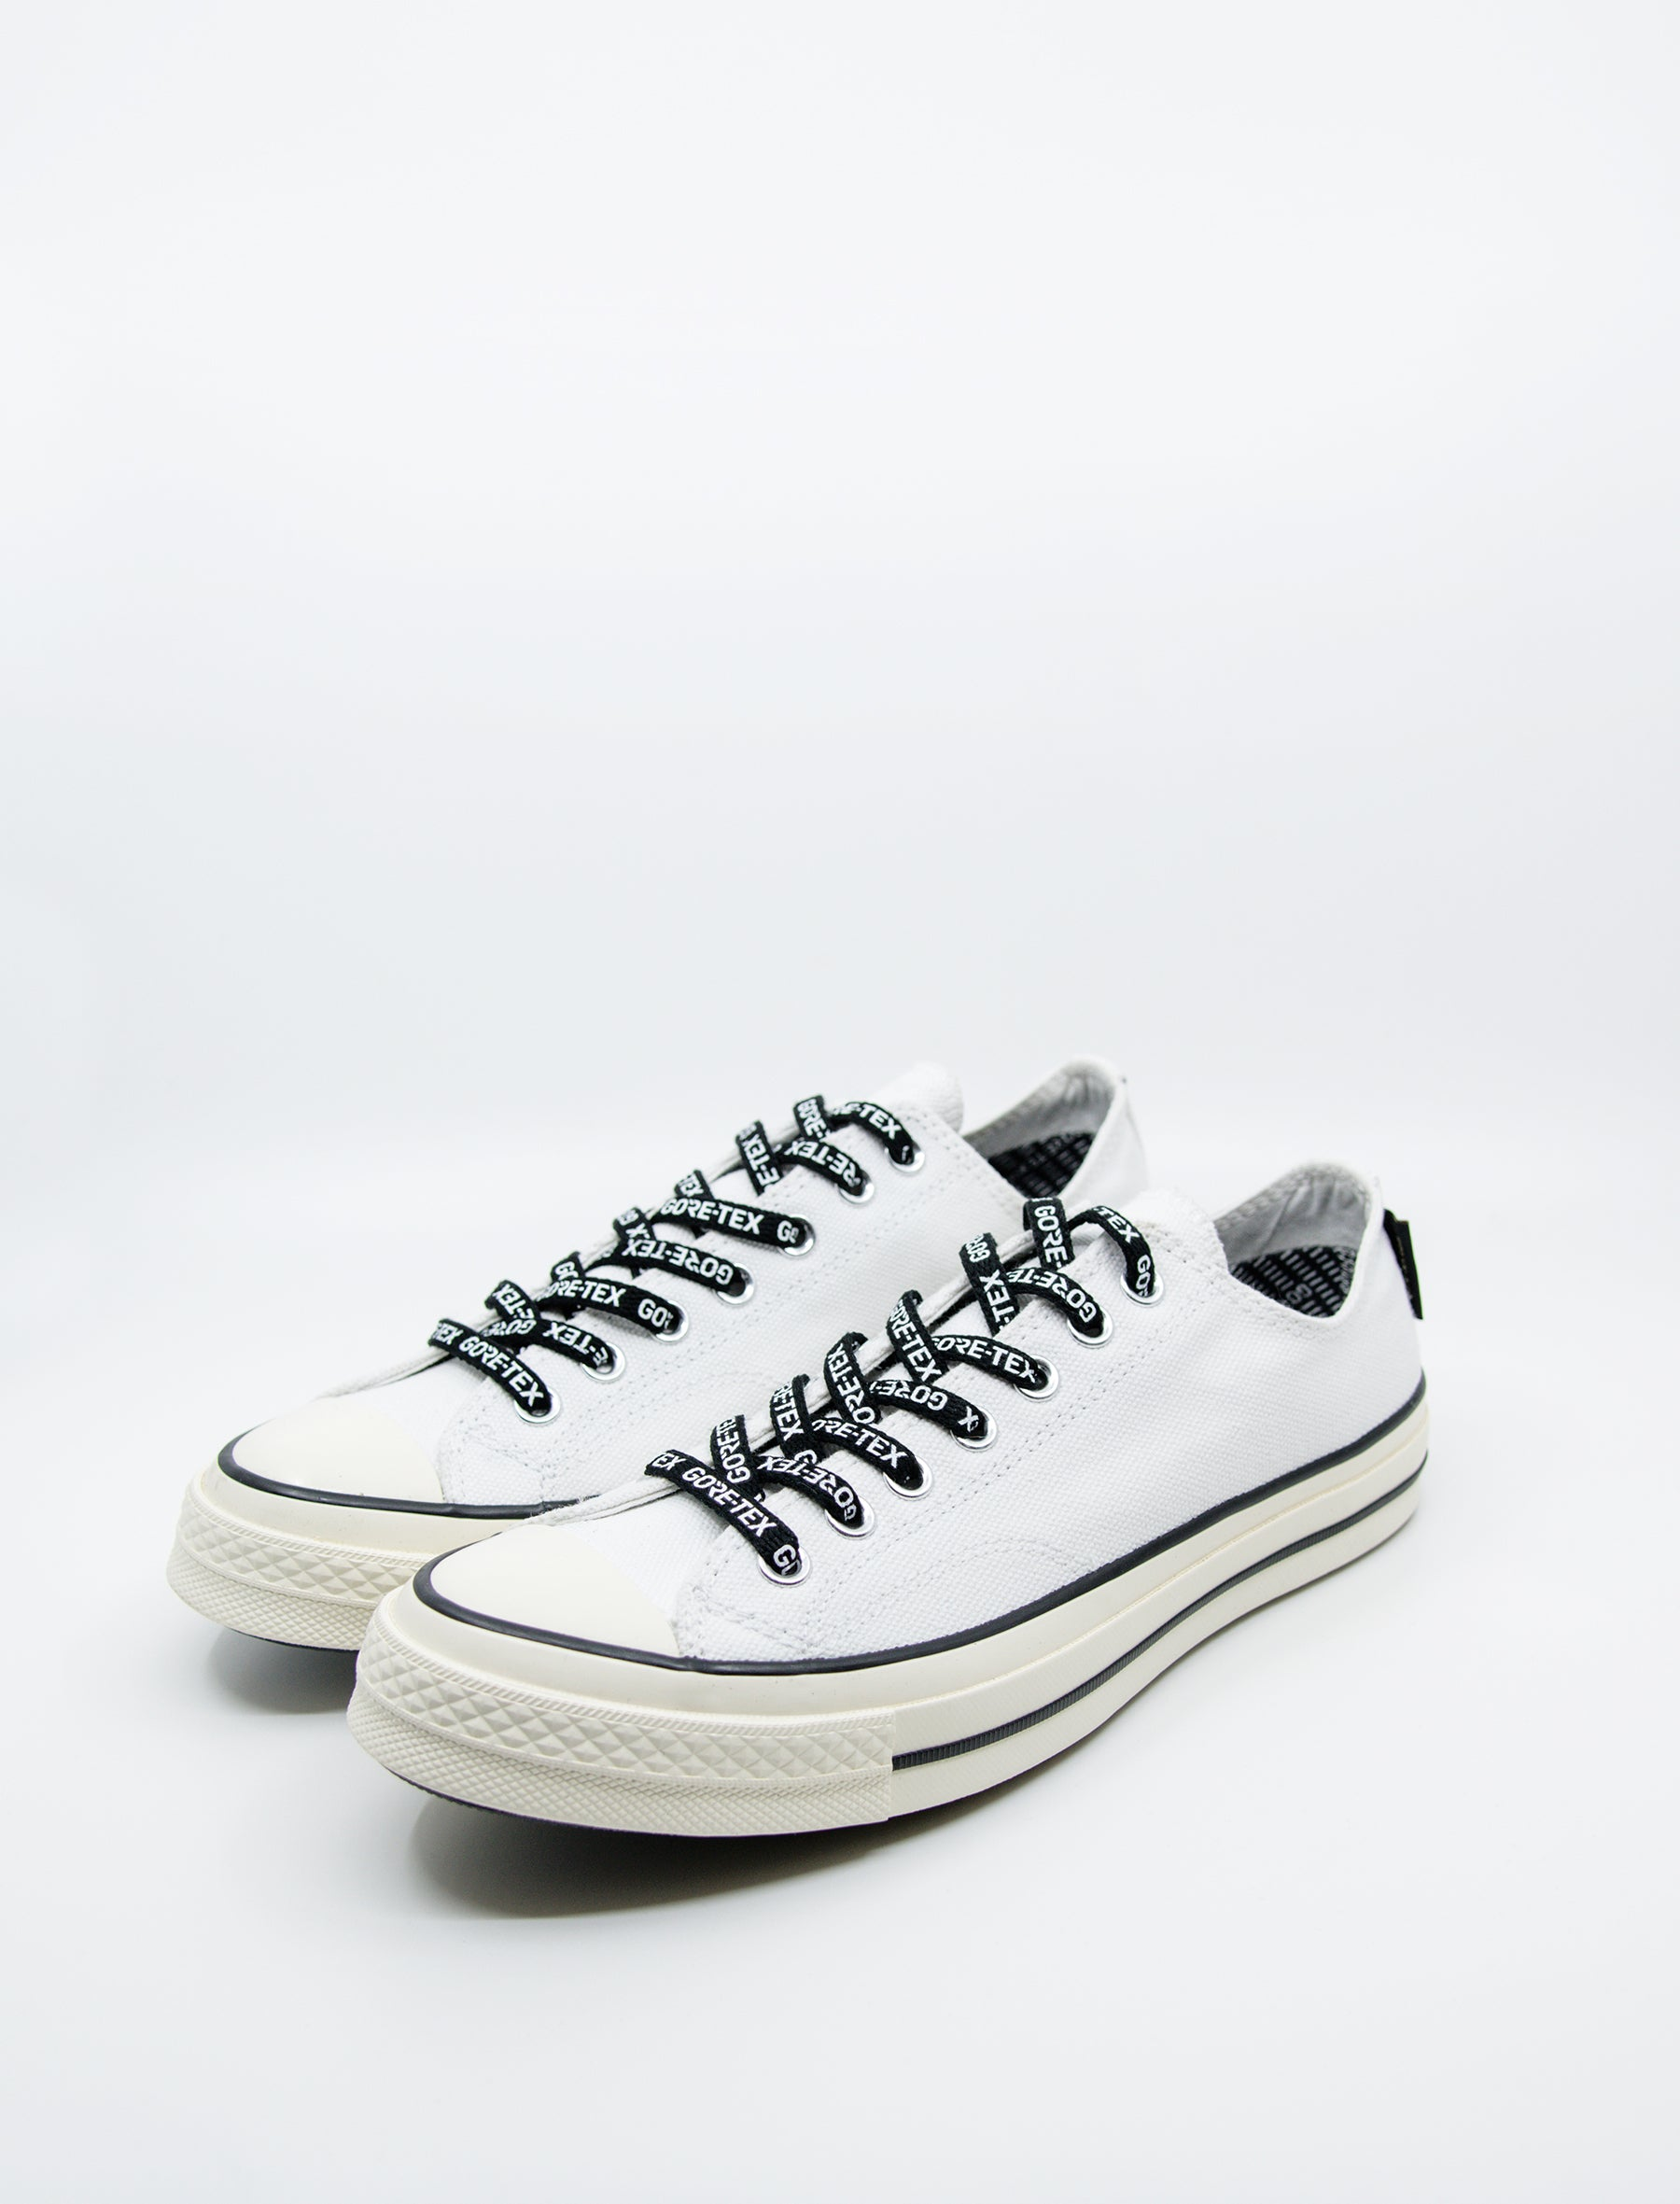 62f6778b50ae Chuck 70 Low Gore-tex White Black 163346C - NOMAD